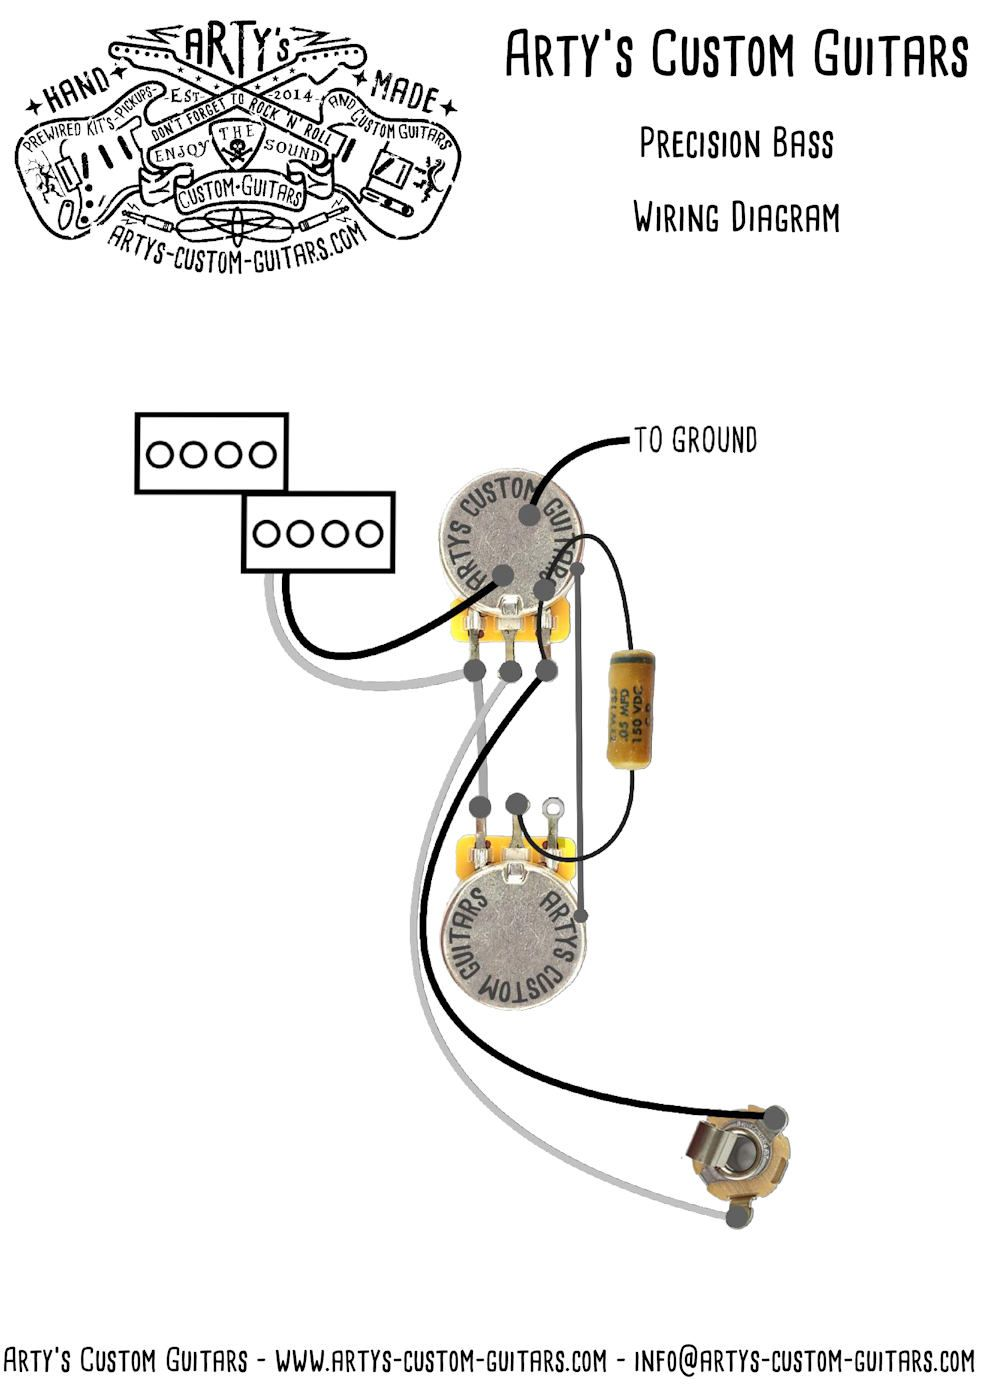 hight resolution of precision bass wiring diagram arty s custom guitars